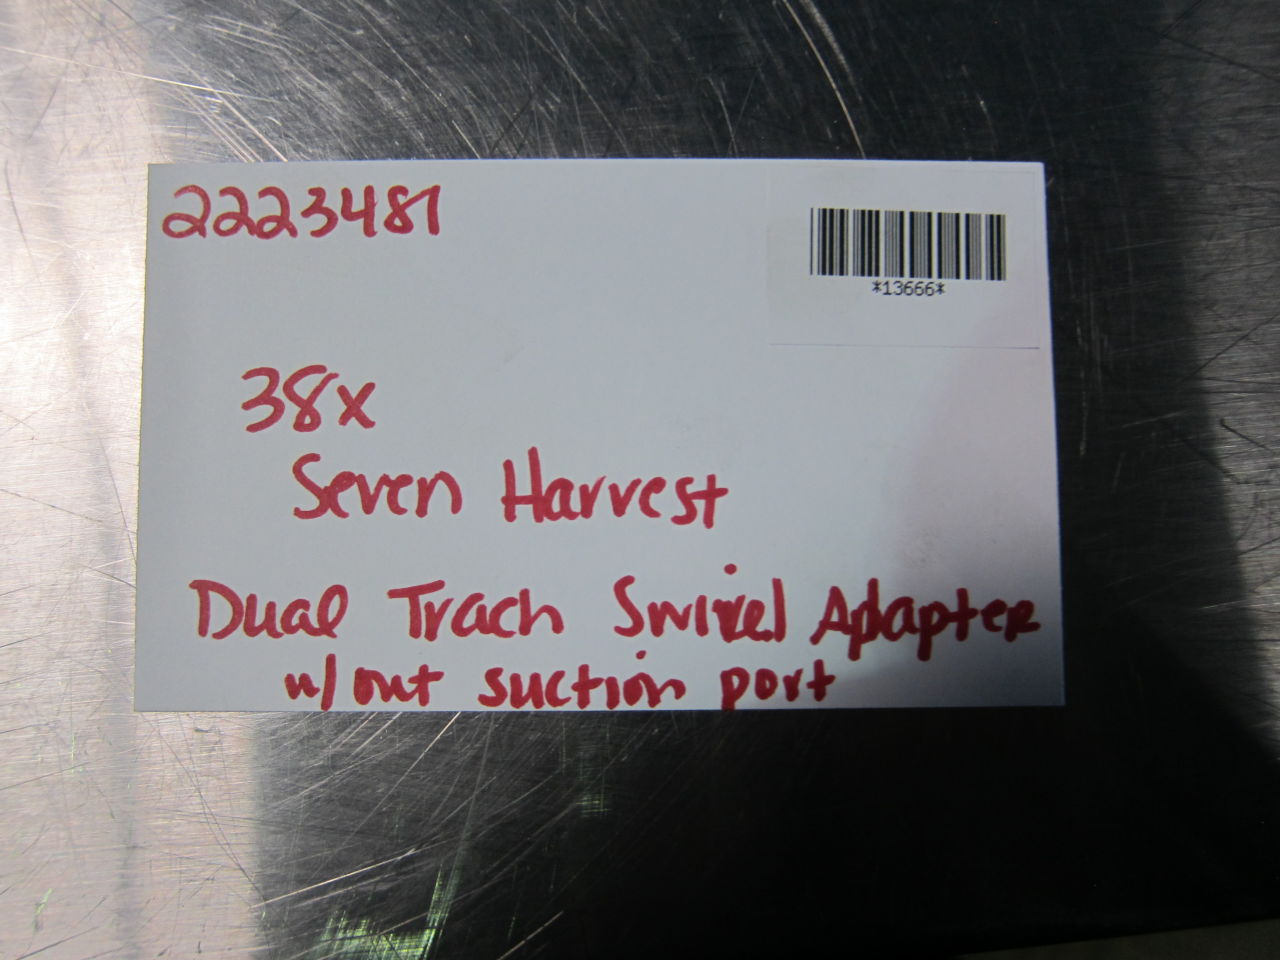 SEVEN HARVEST Dual Trach Swivel Adapter - Lot of 38